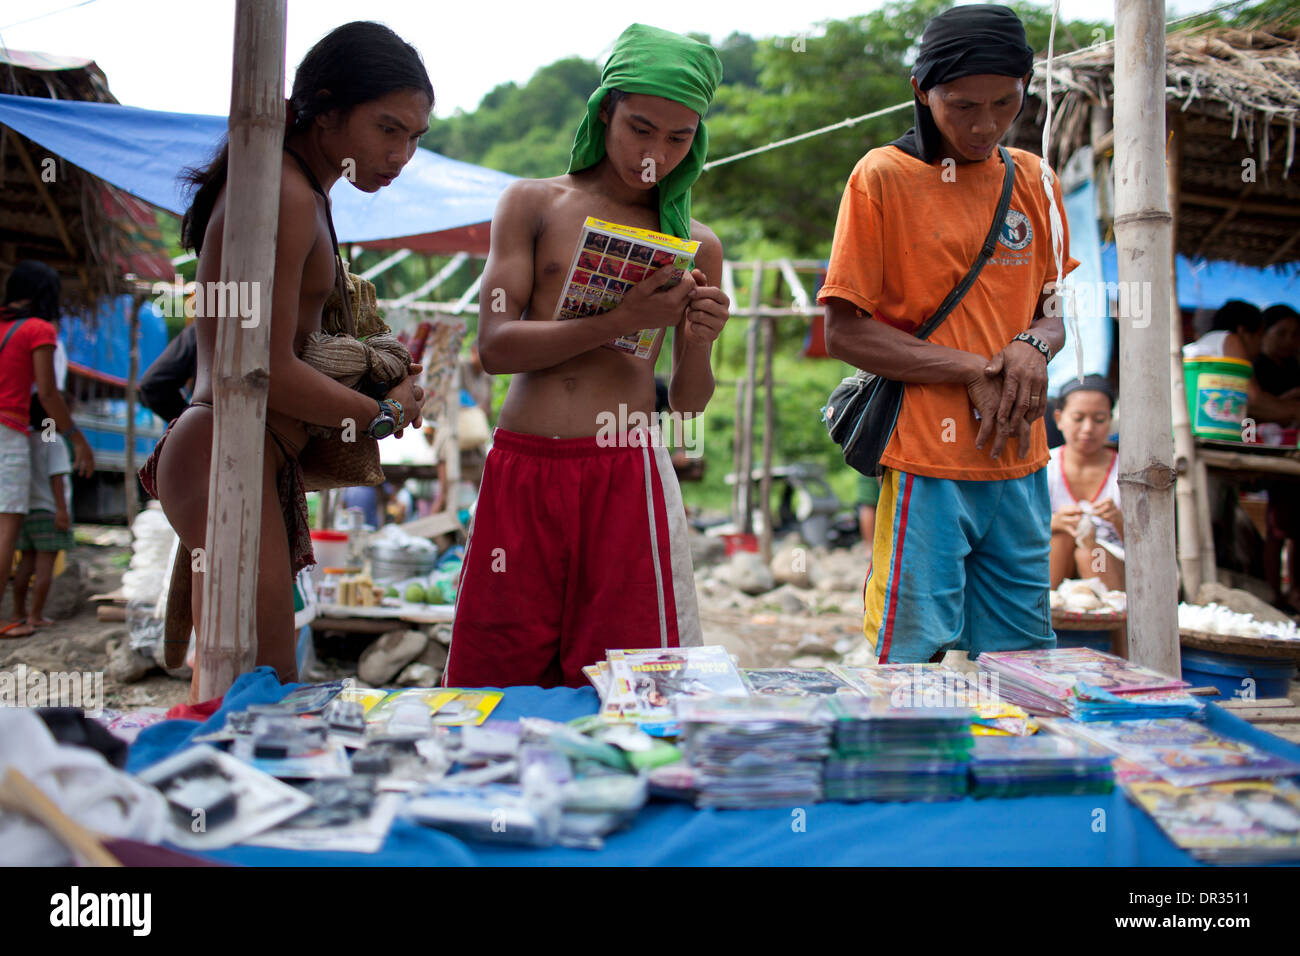 A Hanunoo Mangyans browse DVD titles for sale at a Mangyan market near Mansalay, Oriental Mindoro, Philippines. Stock Photo